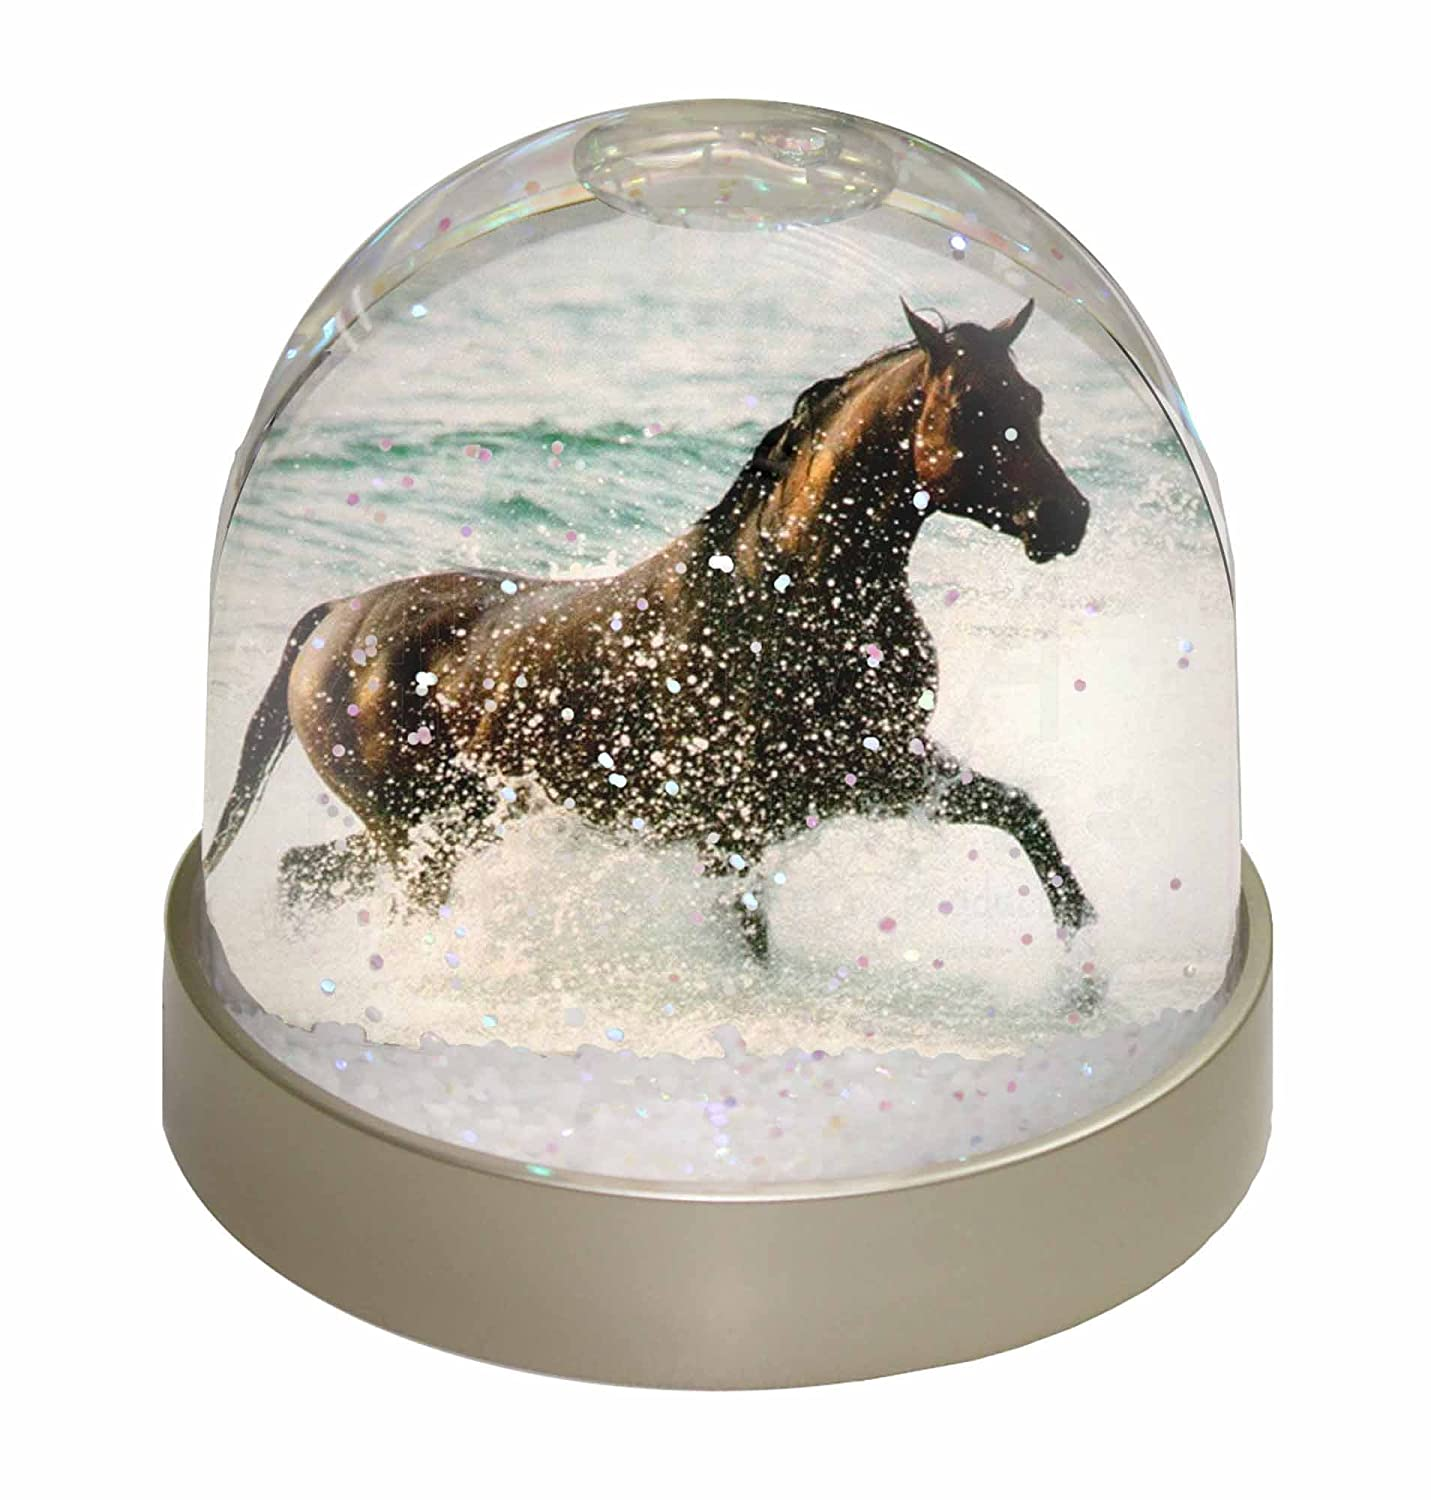 Advanta Black Horse in Sea Snow Dome Globe Waterball Gift, Multi-Colour, 9.2 x 9.2 x 8 cm Advanta Products AH-2GL